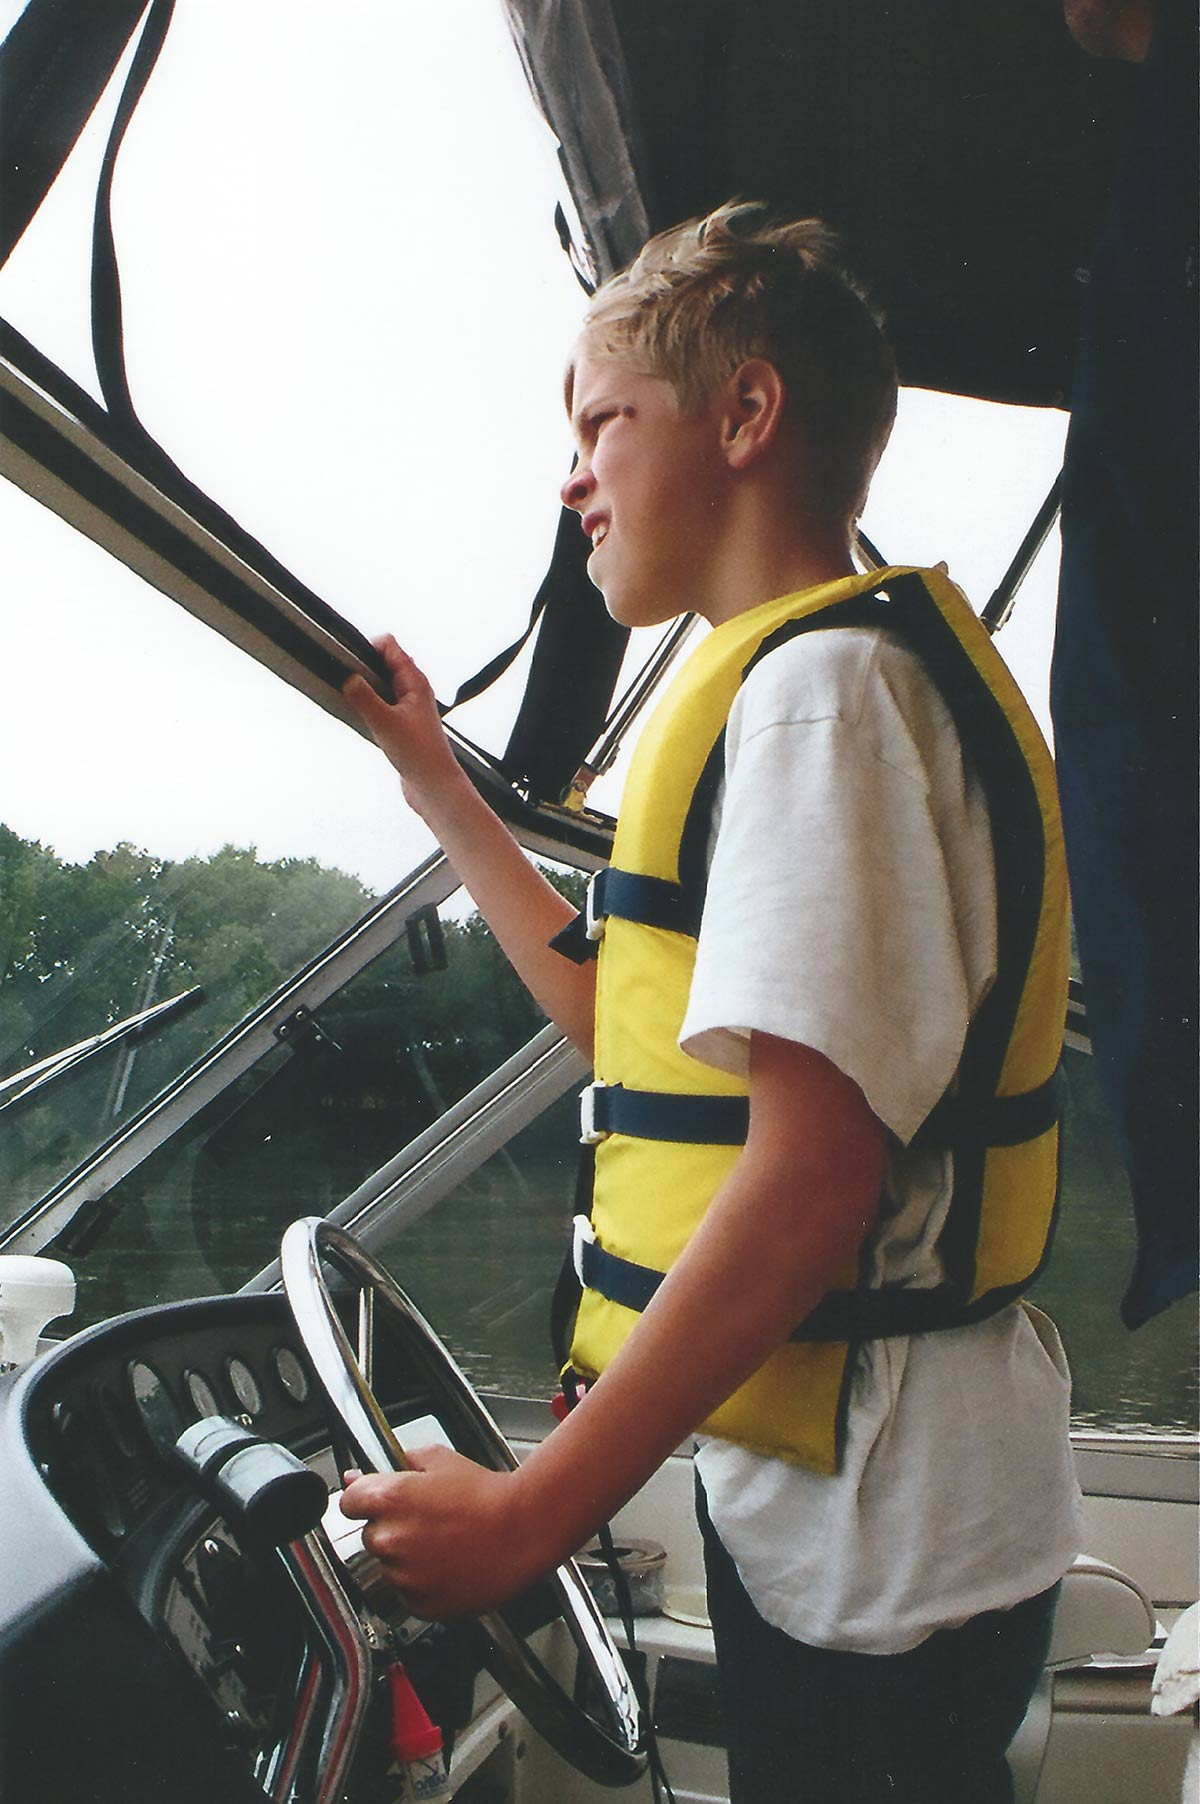 First mate on his uncle's boat